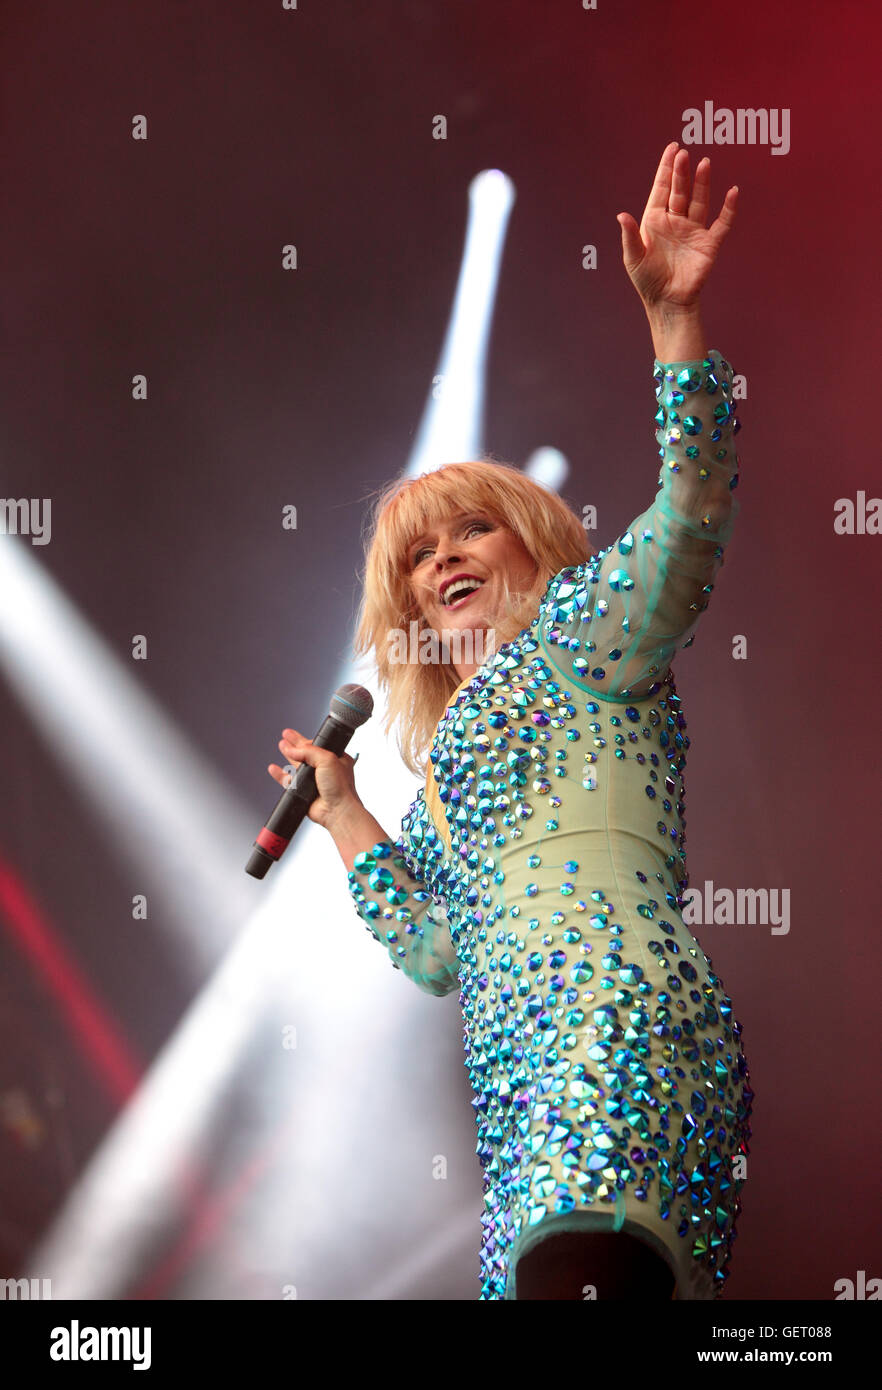 Toyah Willcox,Sings at The rewind festival sings at The Rewind Festival,Scone Palace,Perth,Scotland,Uk - Stock Image